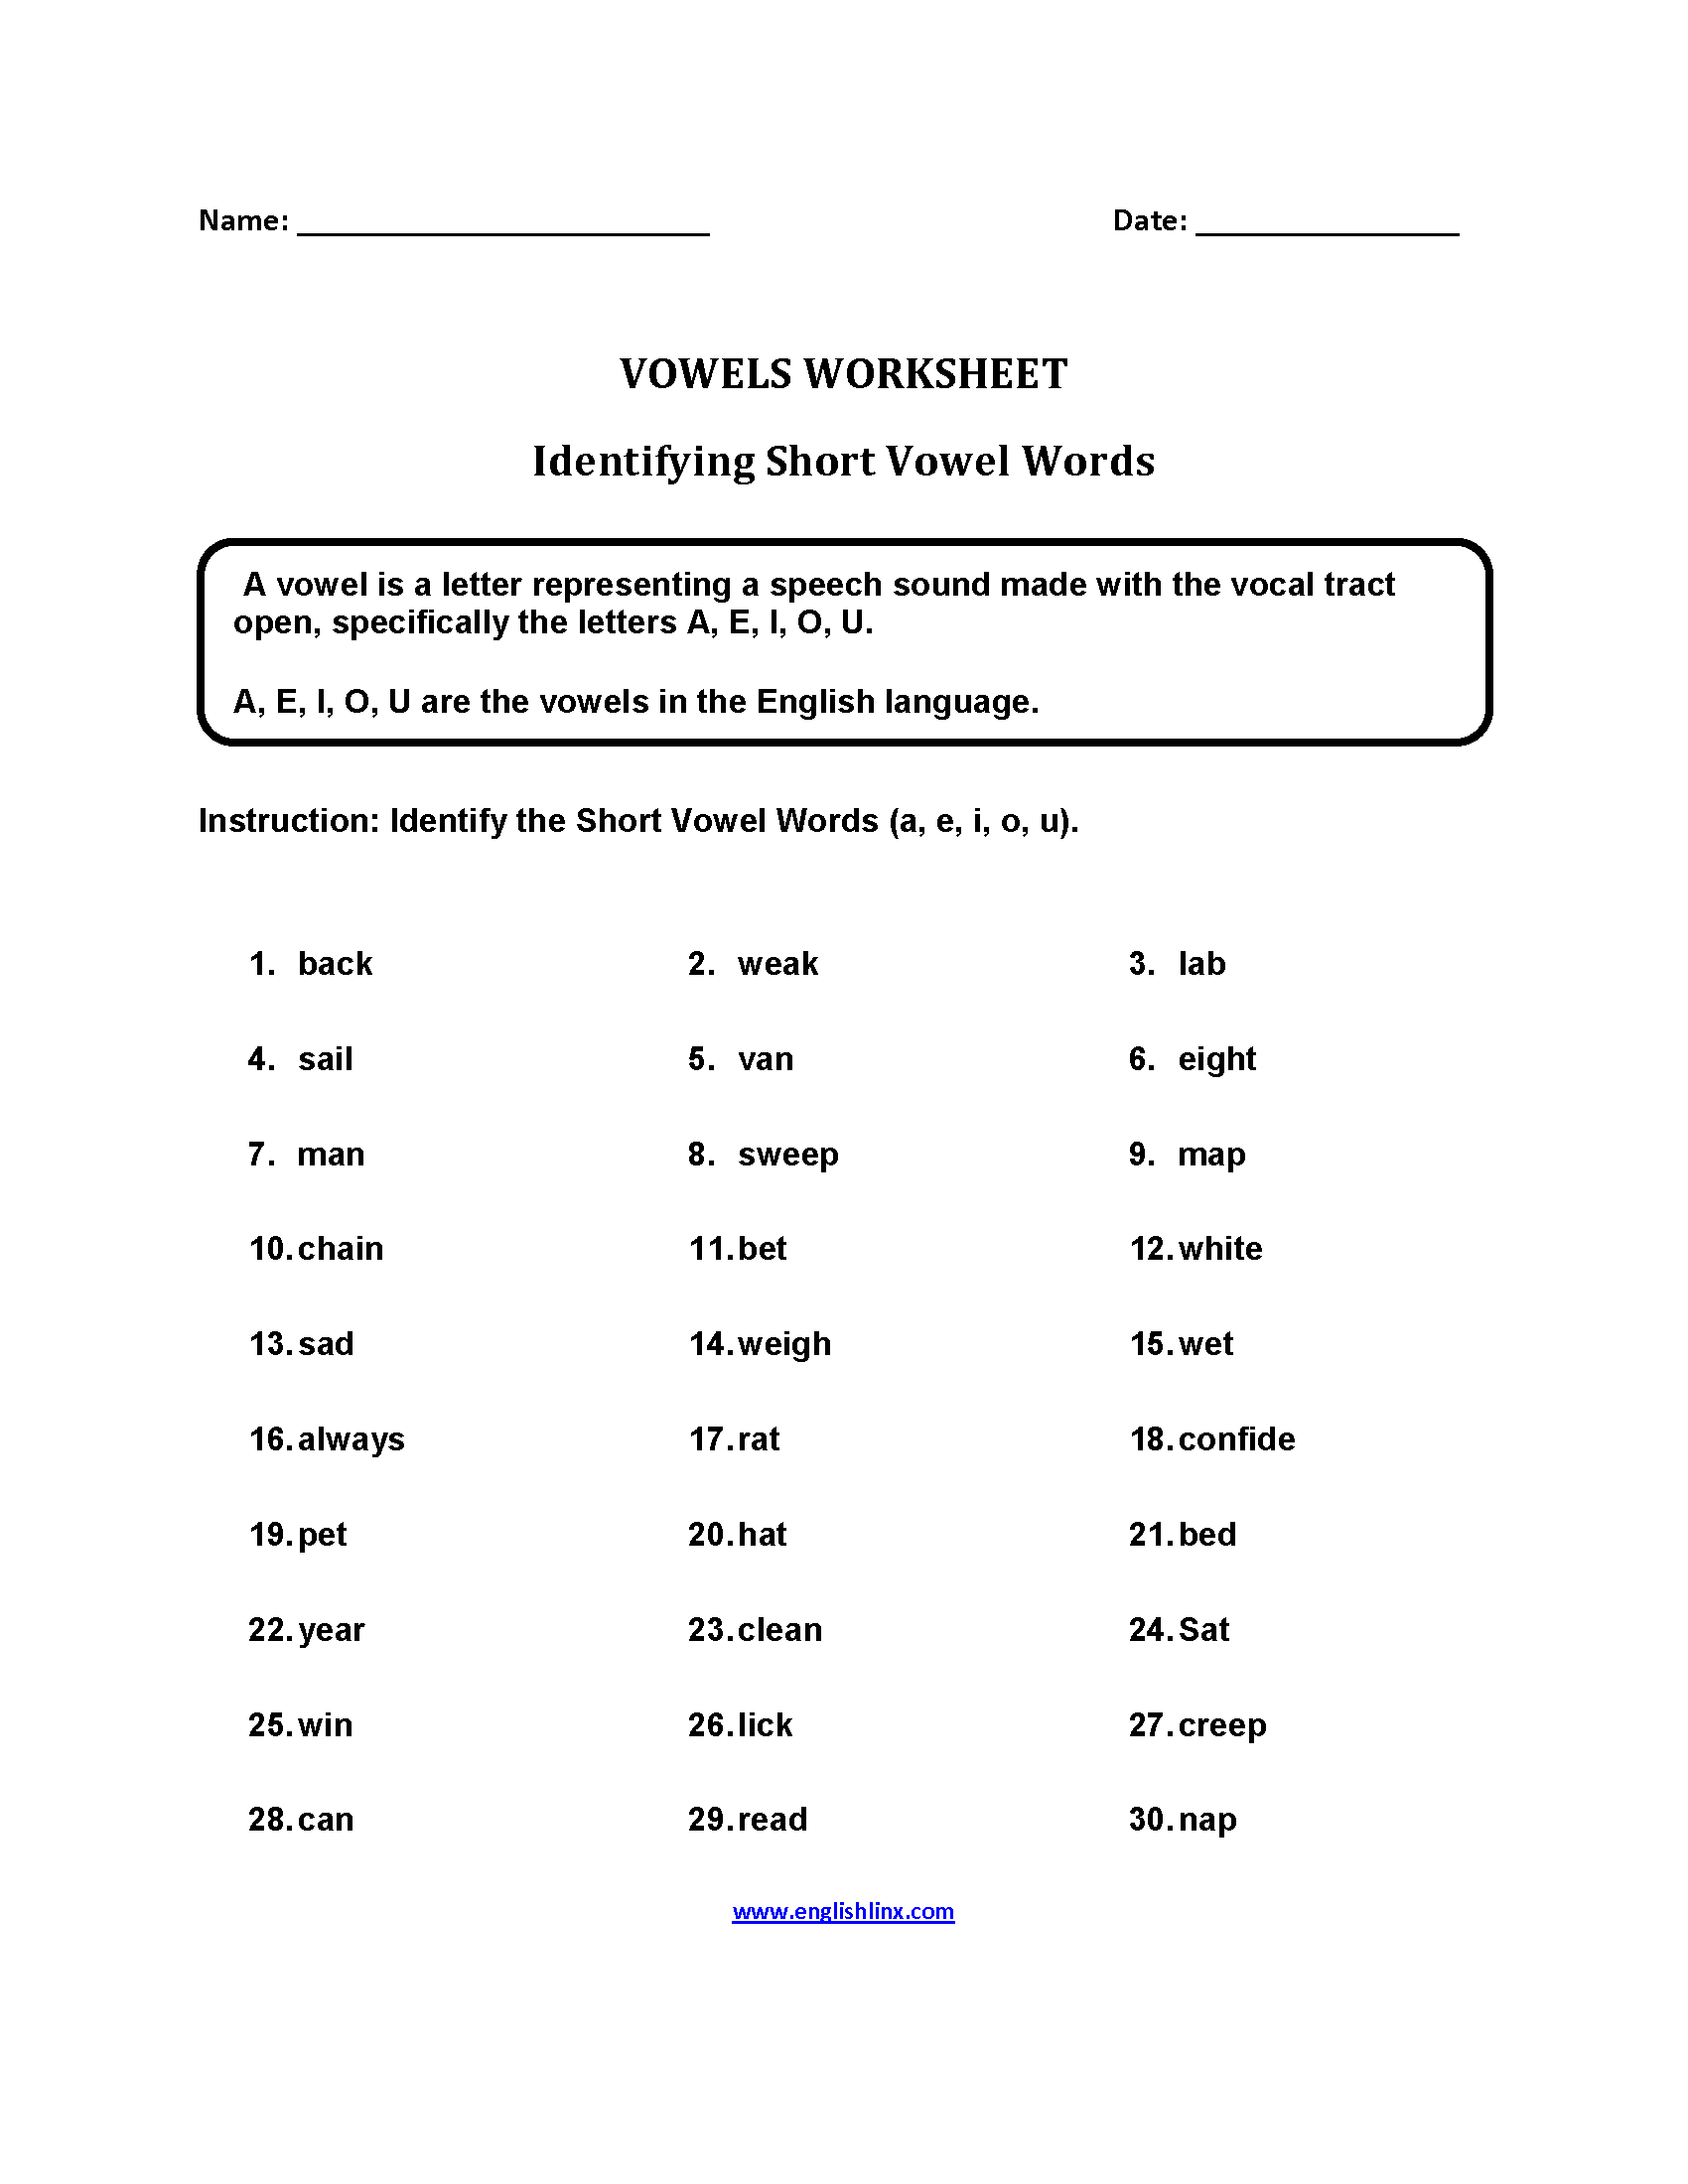 Vowels Worksheet Free